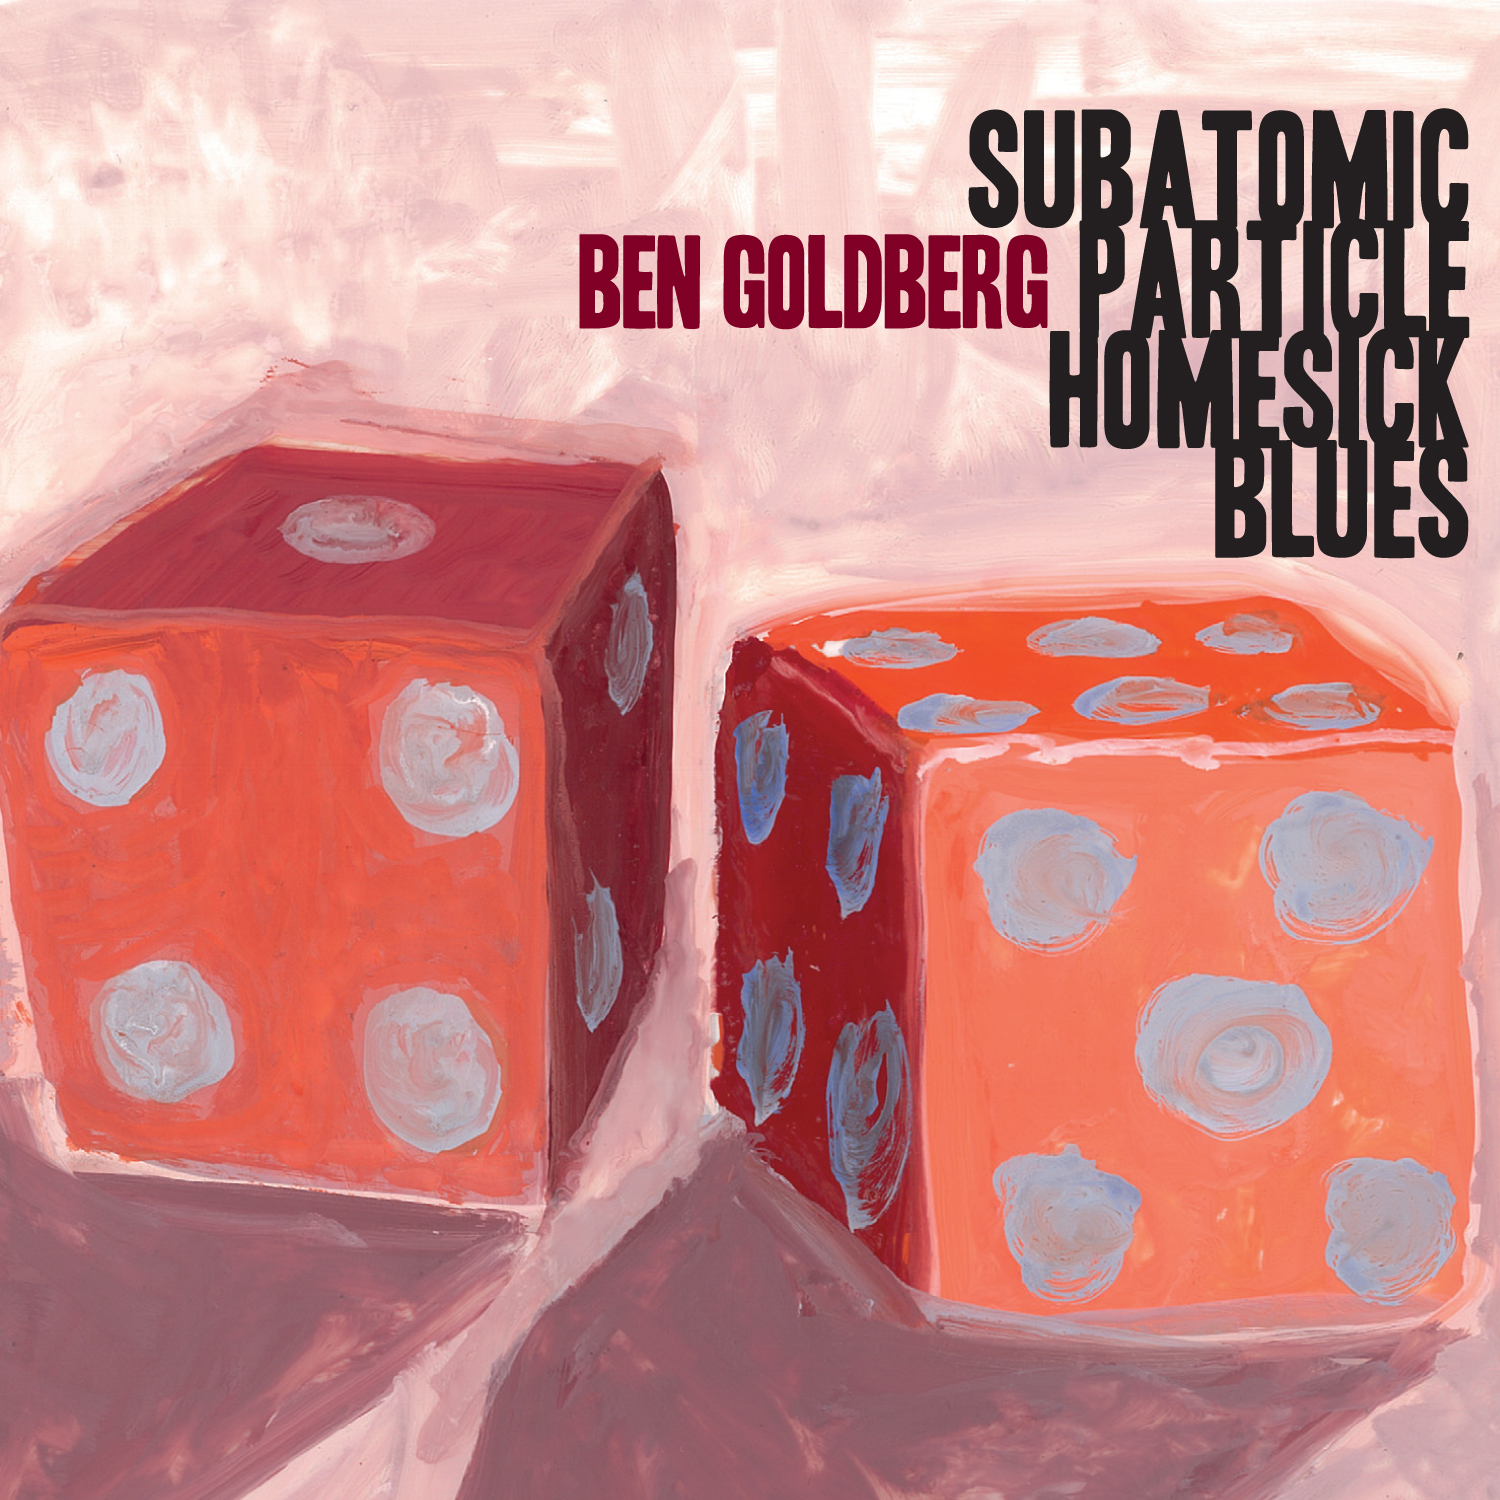 Bag003_-_subatomic_particle_homesick_blues_-_ben_goldberg